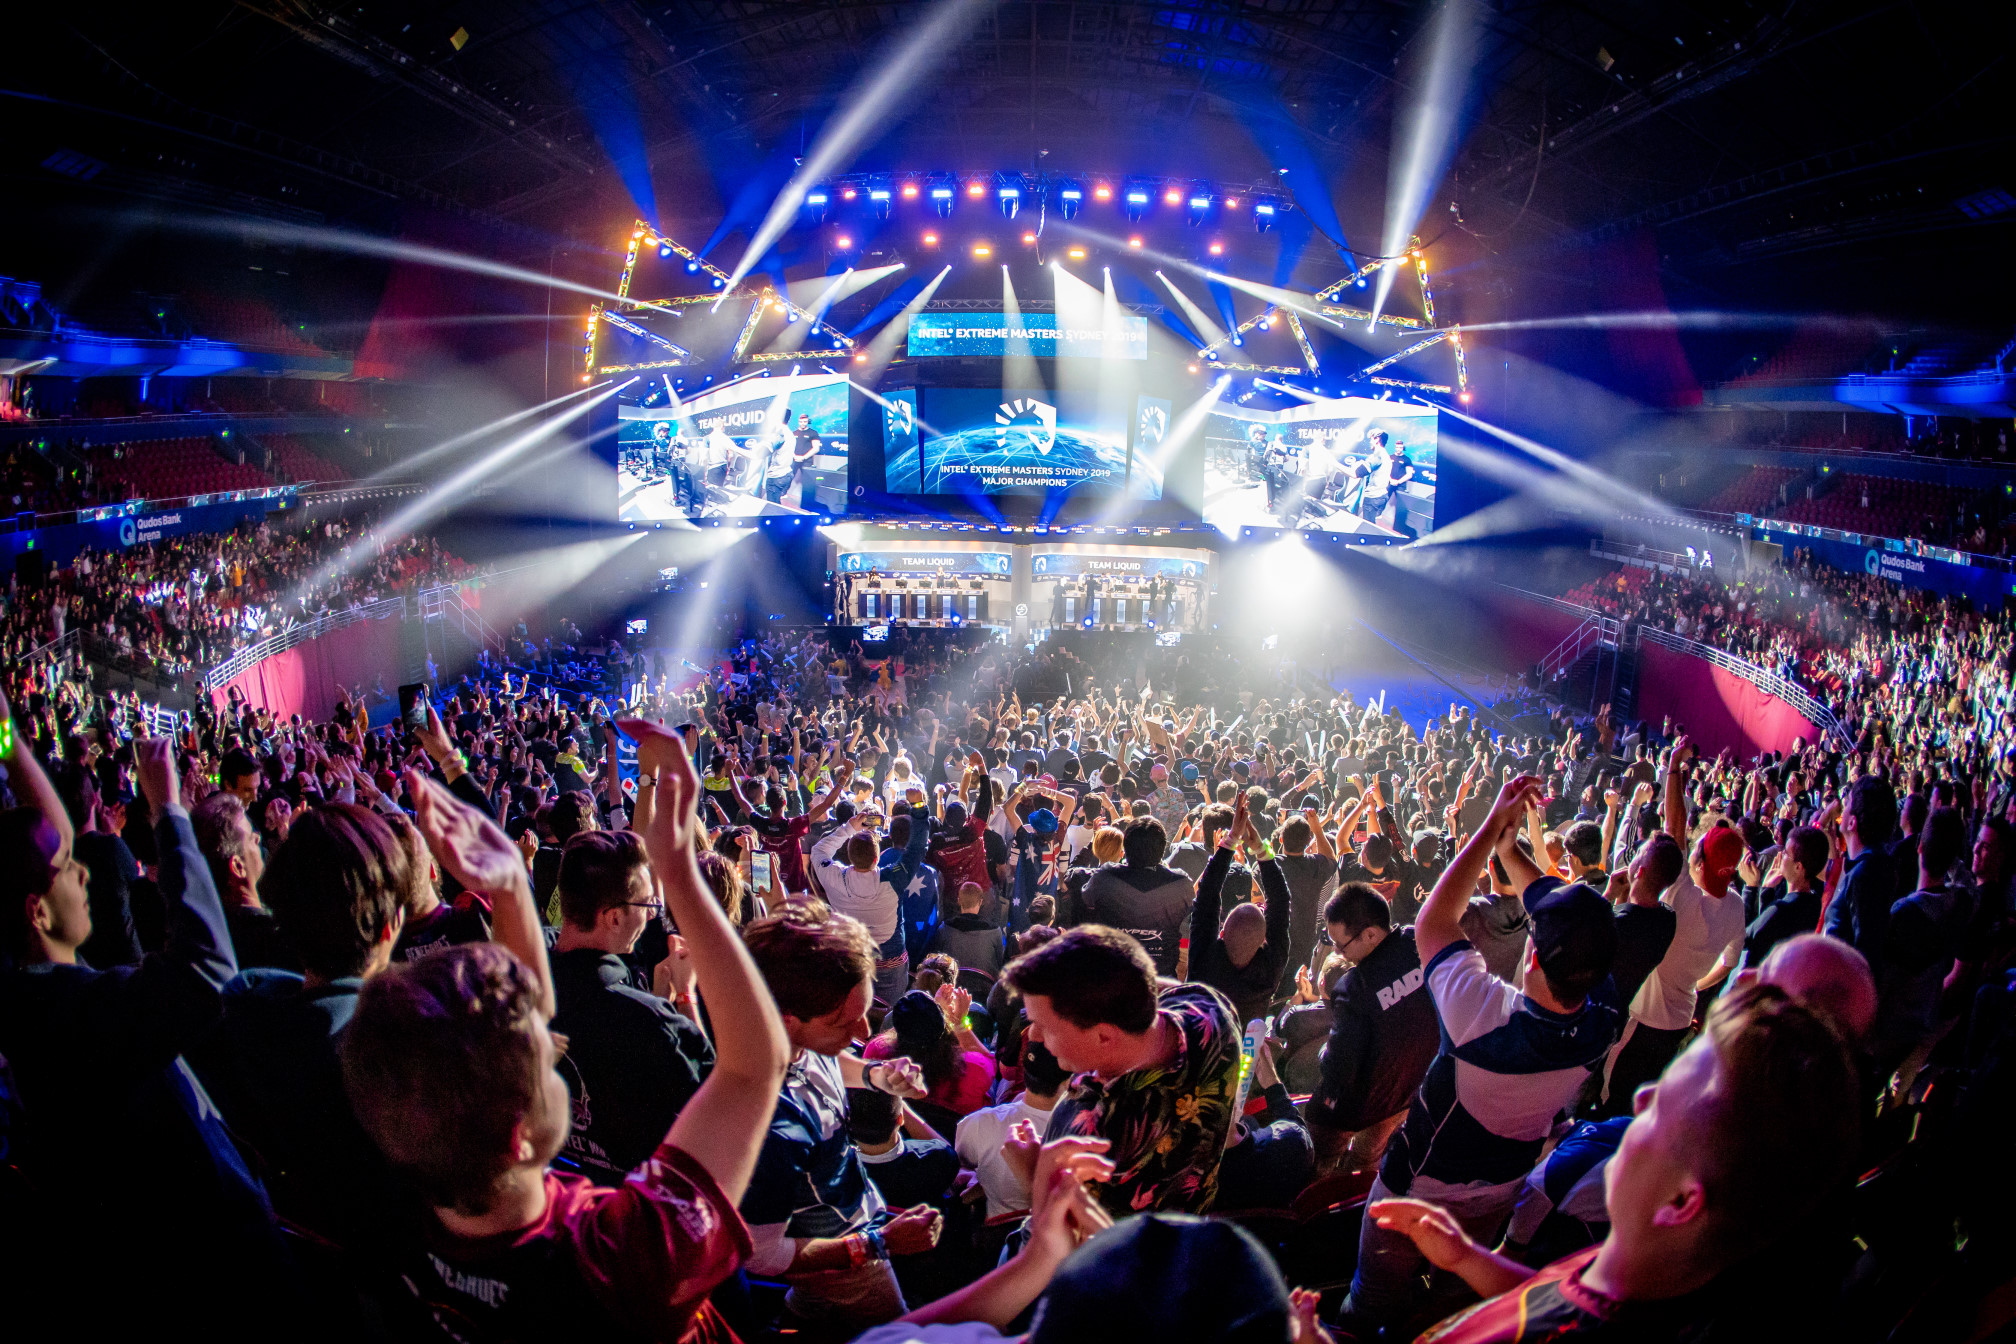 Intel® Extreme Masters headlines Melbourne Esports Open in 2020